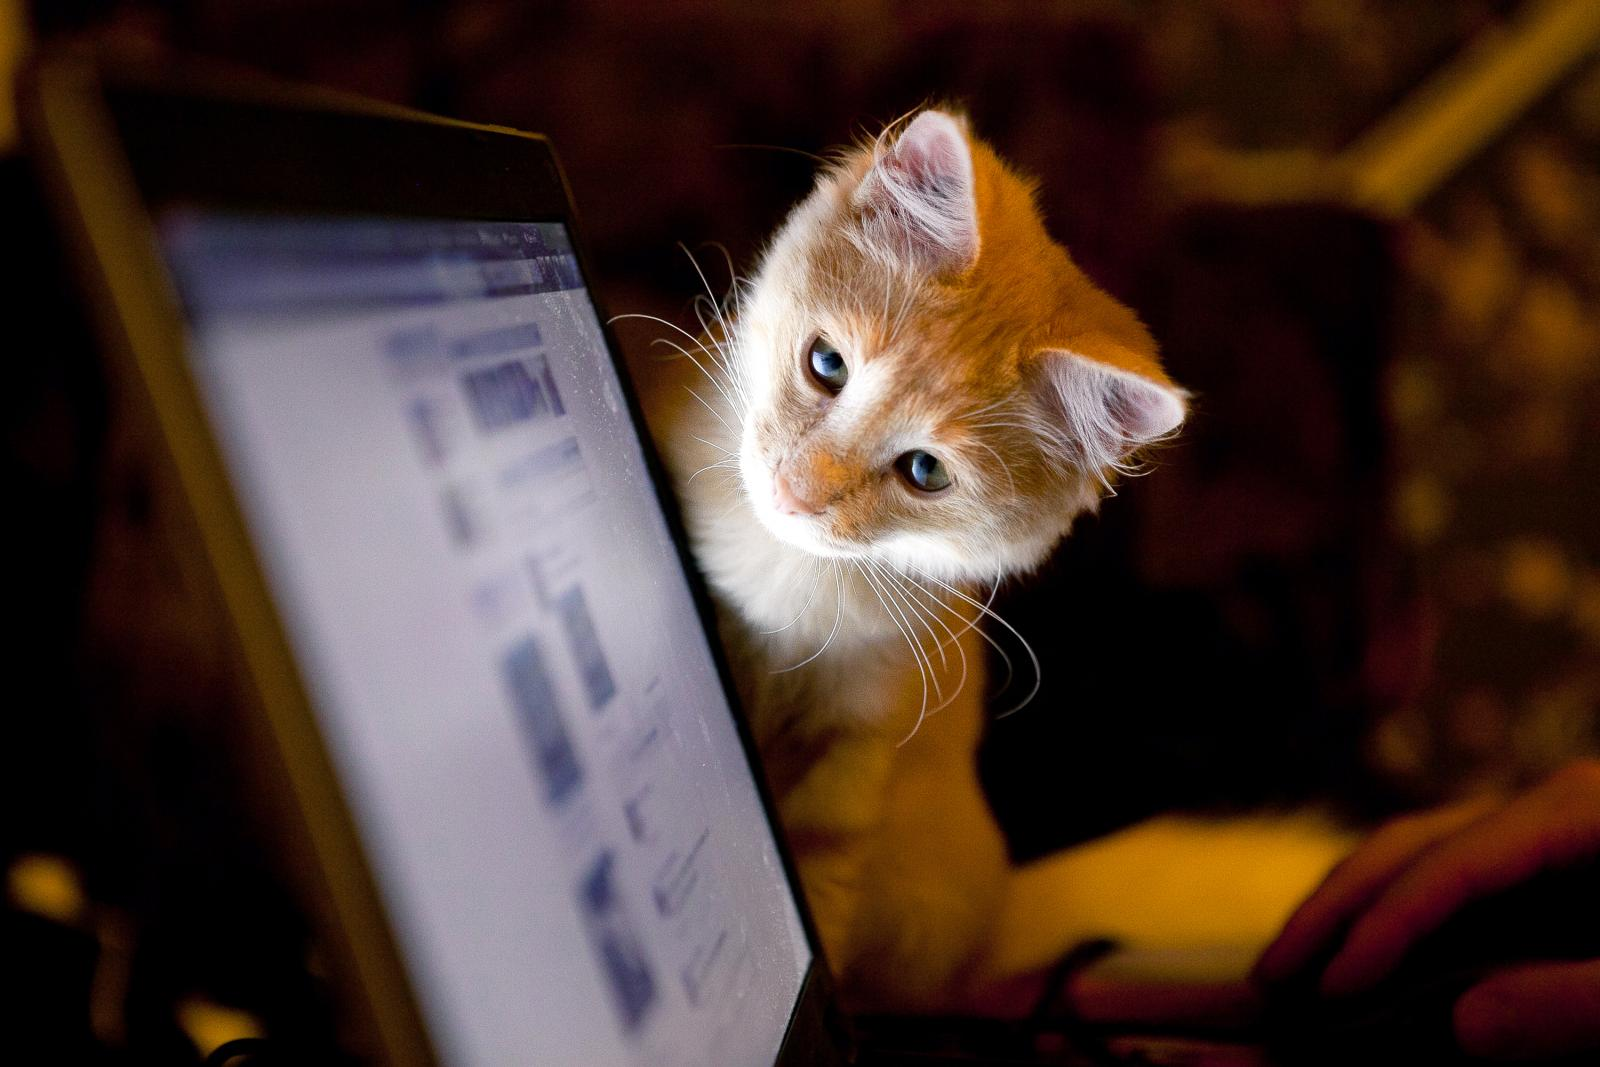 Cat and a computer